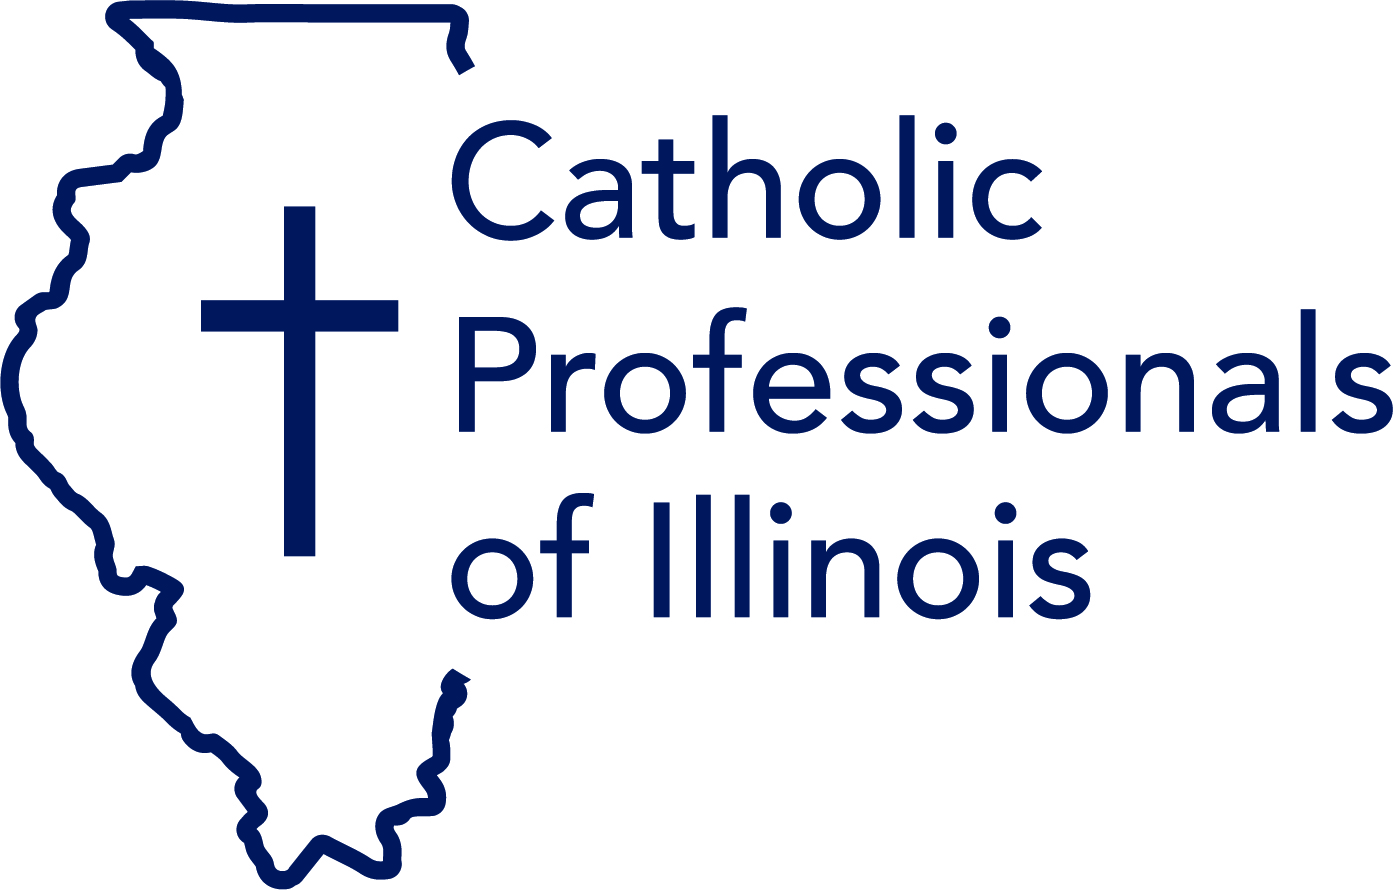 Catholic Professionals of Illinois